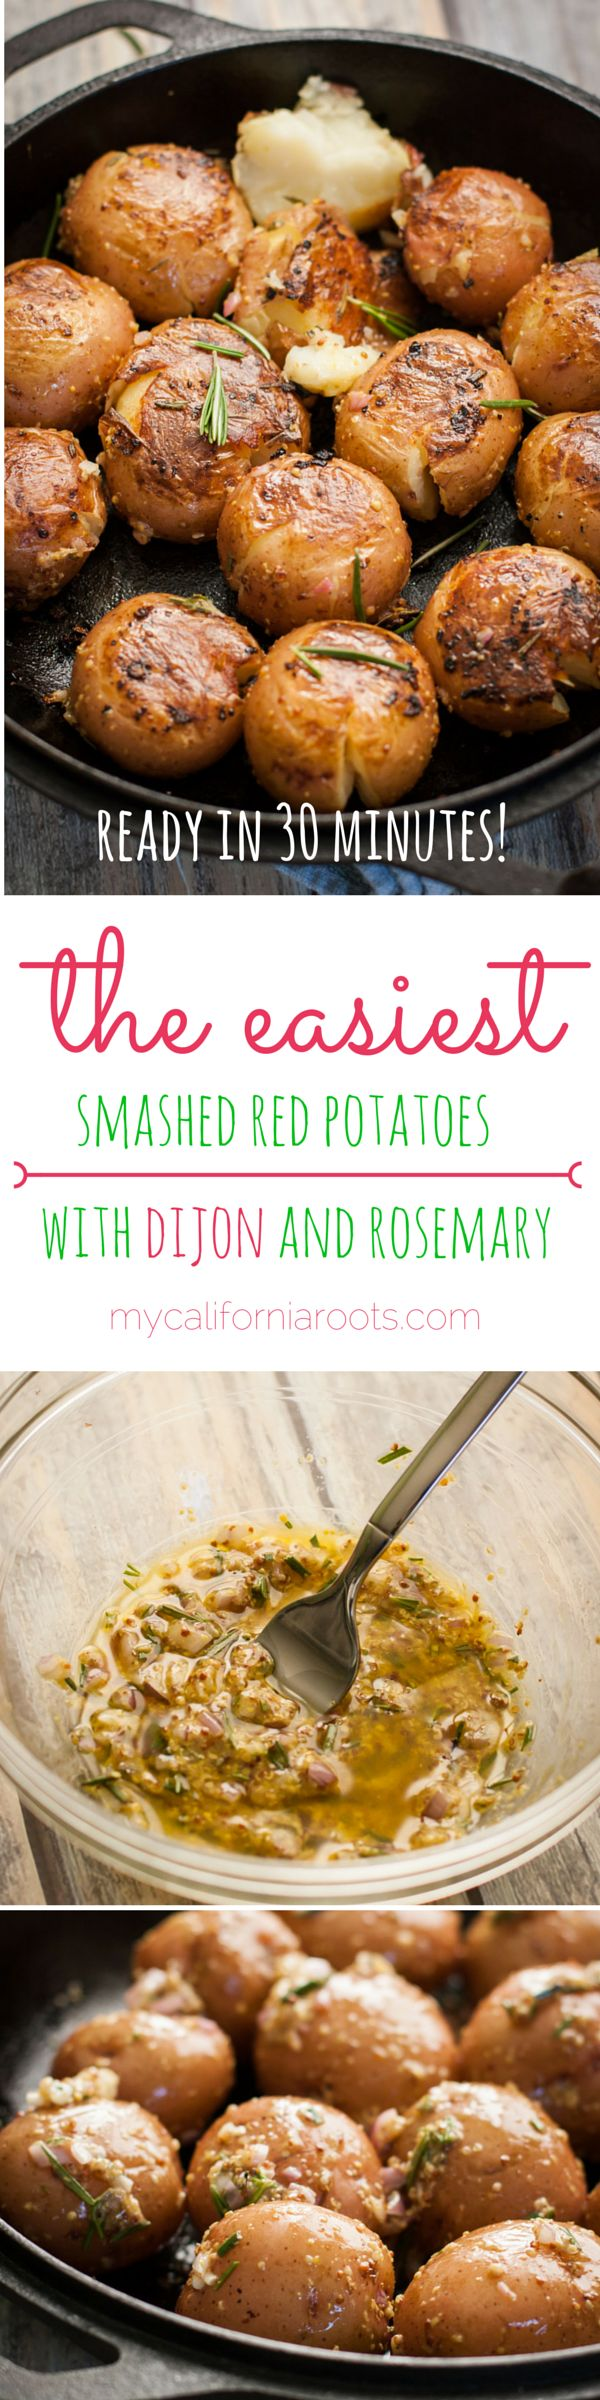 These smashed red potatoes require just one pot and no oven!